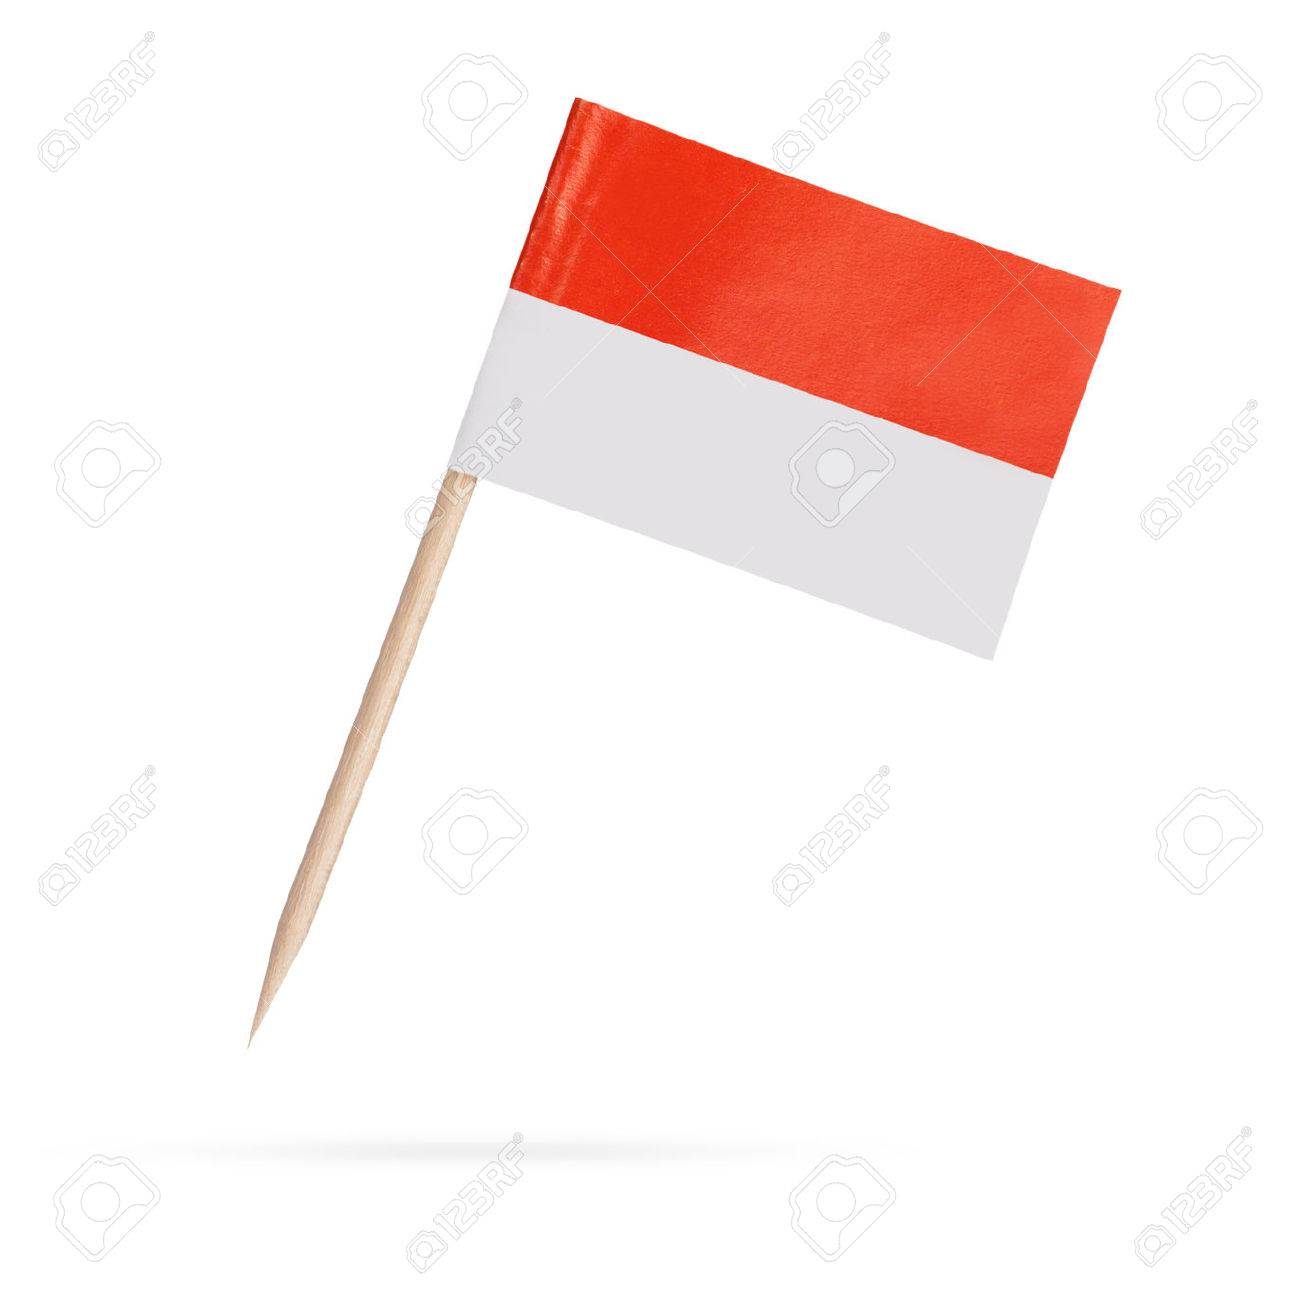 Miniature paper flag Indonesia. Isolated Indonesian Flag on white background.With shadow below - 35790456